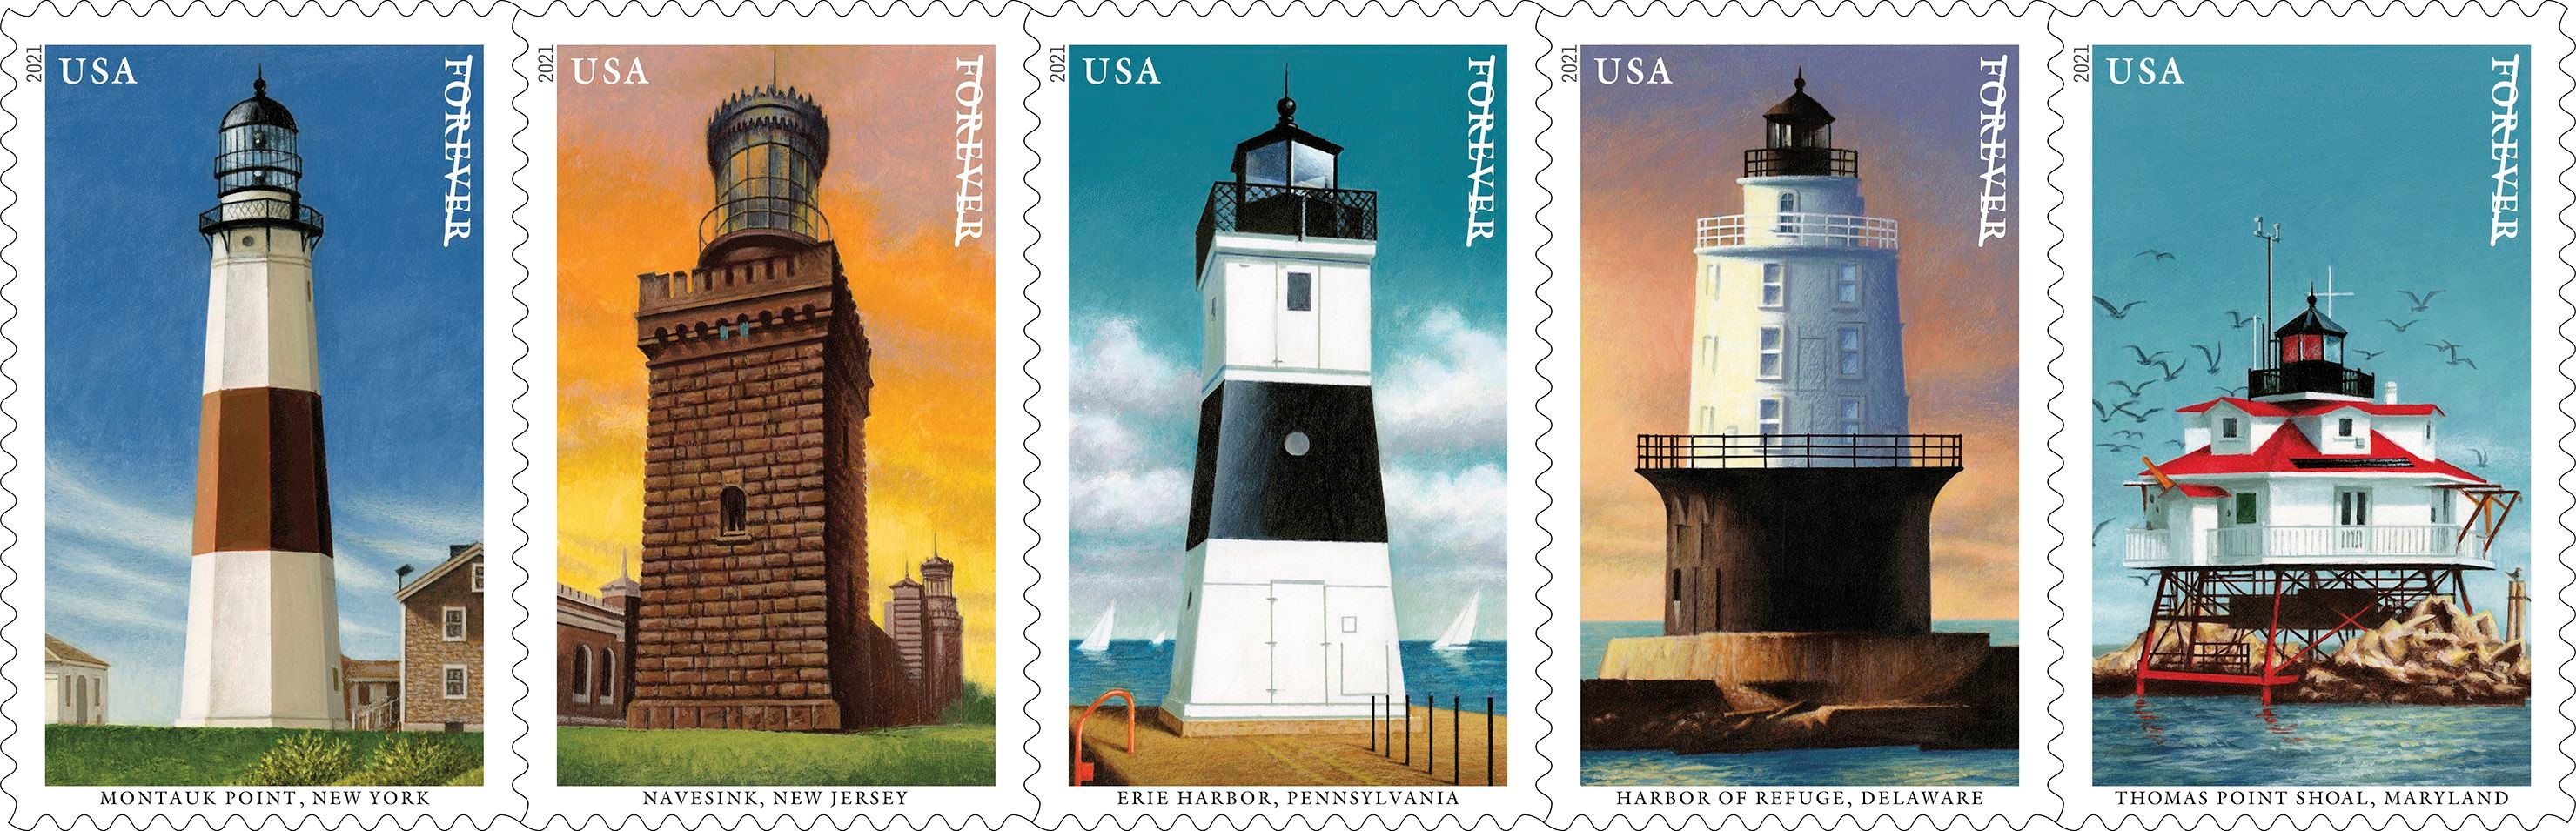 Post Office Christmas Stamps 2021 Usps New Stamp Issues 2021 On Stampnewsnow Com